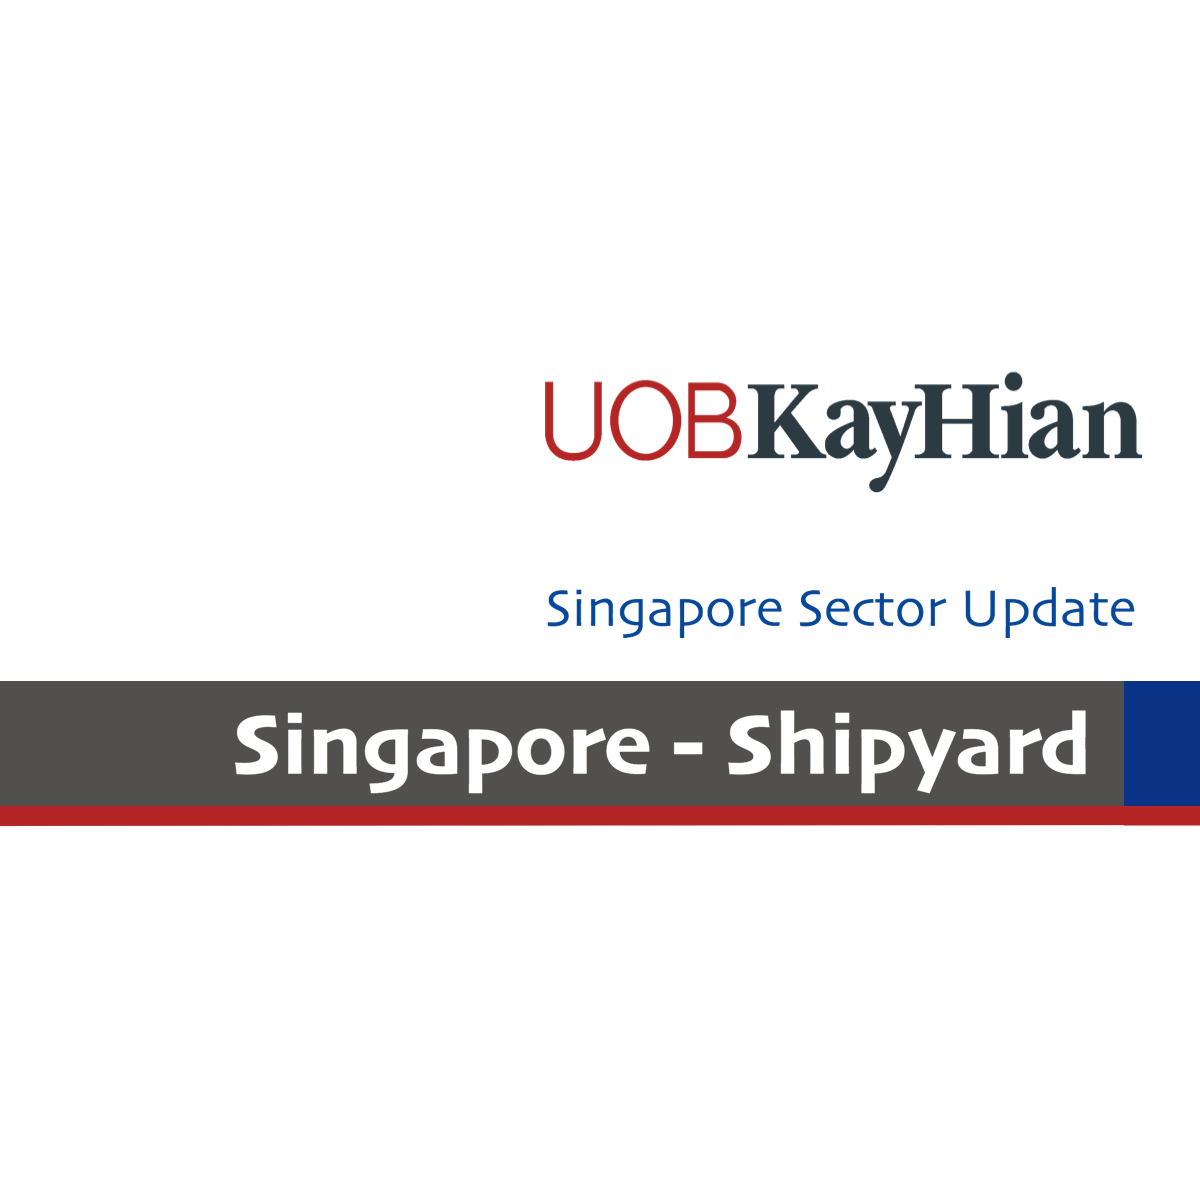 Shipyard – Singapore - UOB Kay Hian 2017-06-20: Recovery In Production Orders For 2017 May Be Weaker Than Expected